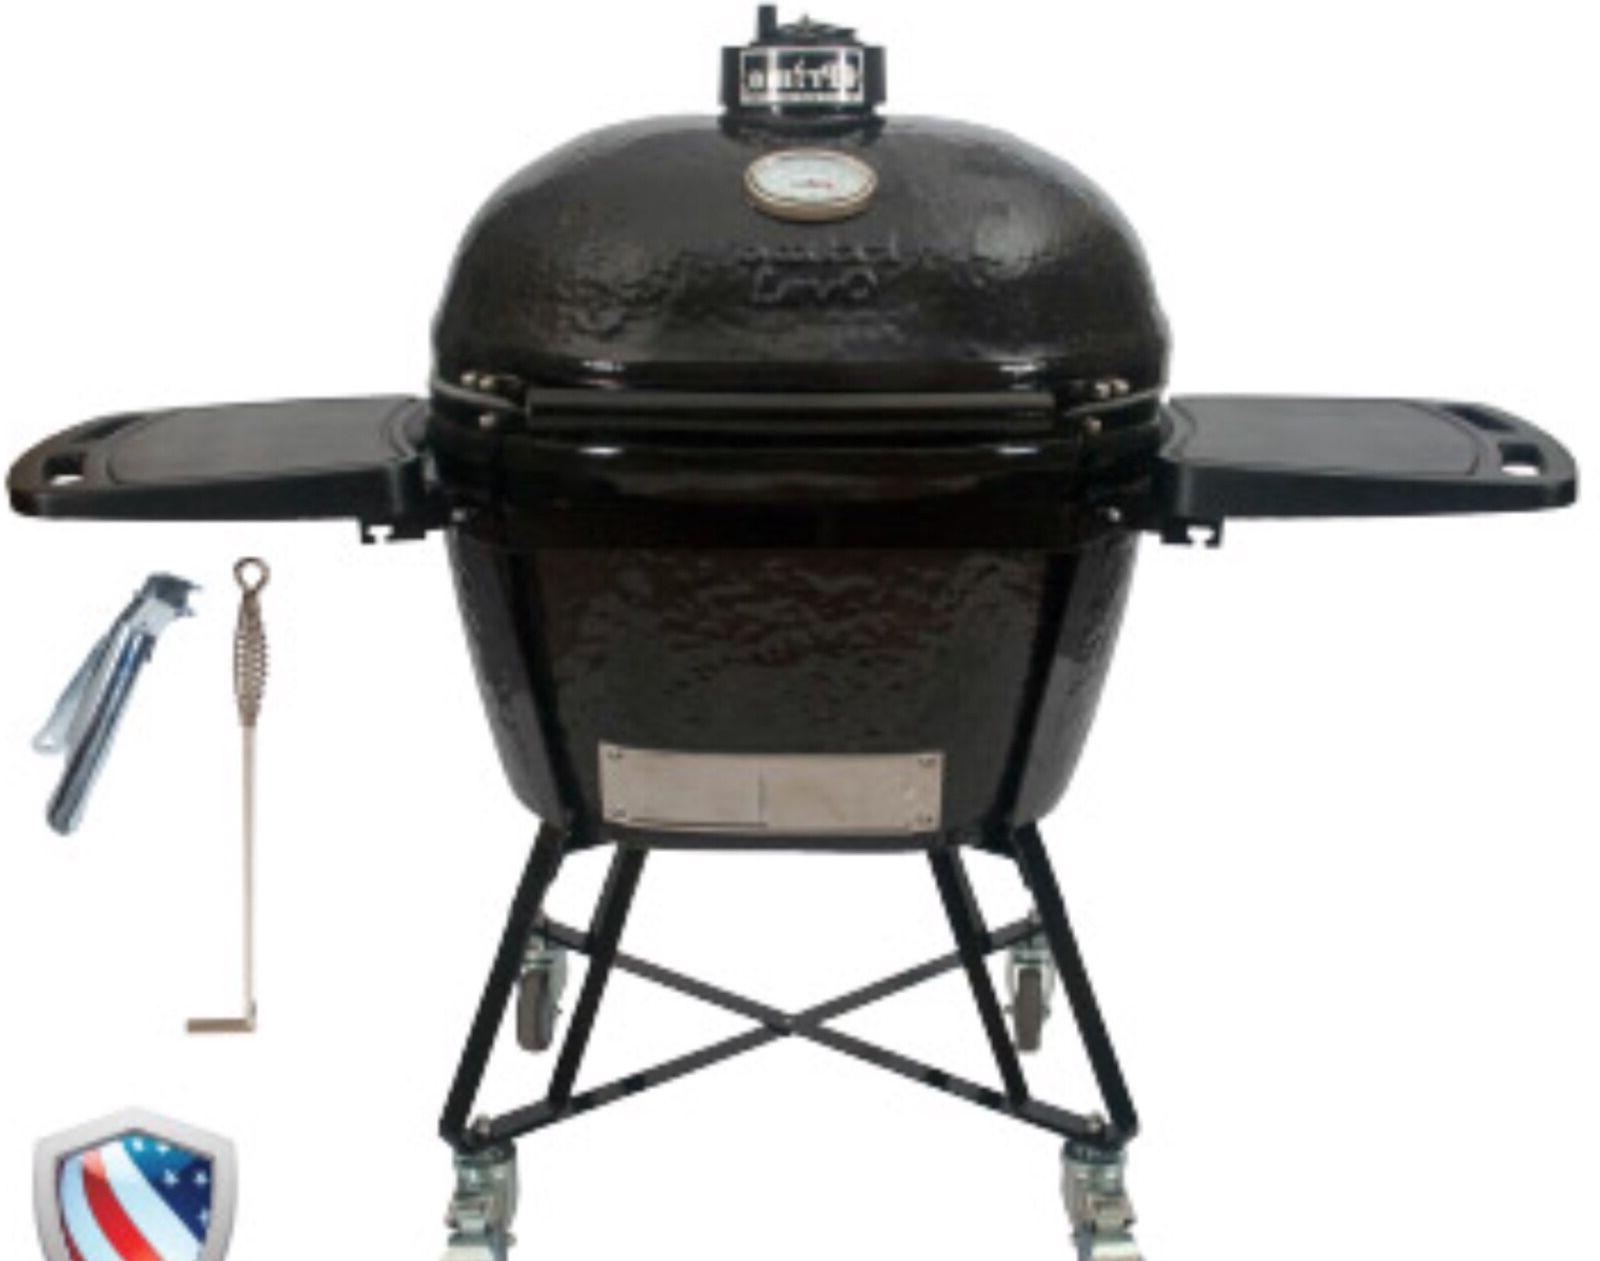 PRIMO OVAL JR 200 ALL-IN-ONE CERAMIC GRILL #PRM7400 WE WILL